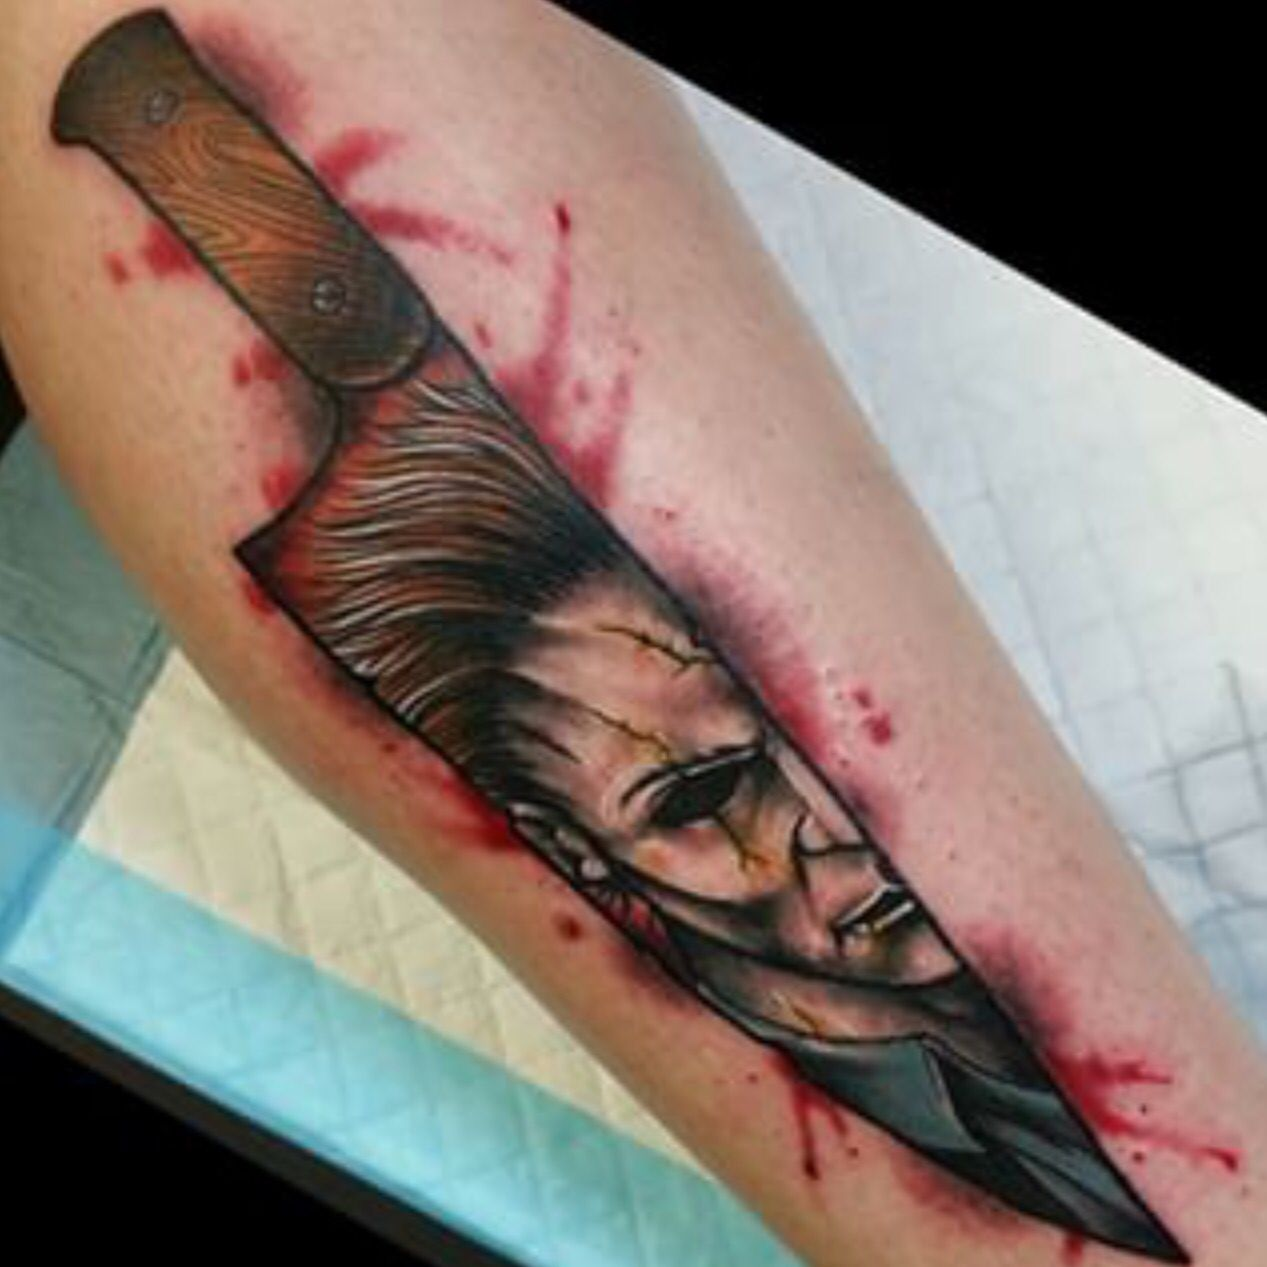 fb3b29387f9b8 Michael Myers Halloween Tattoo. #MichaelMyers #KnifeTattoo | Tattoo ...